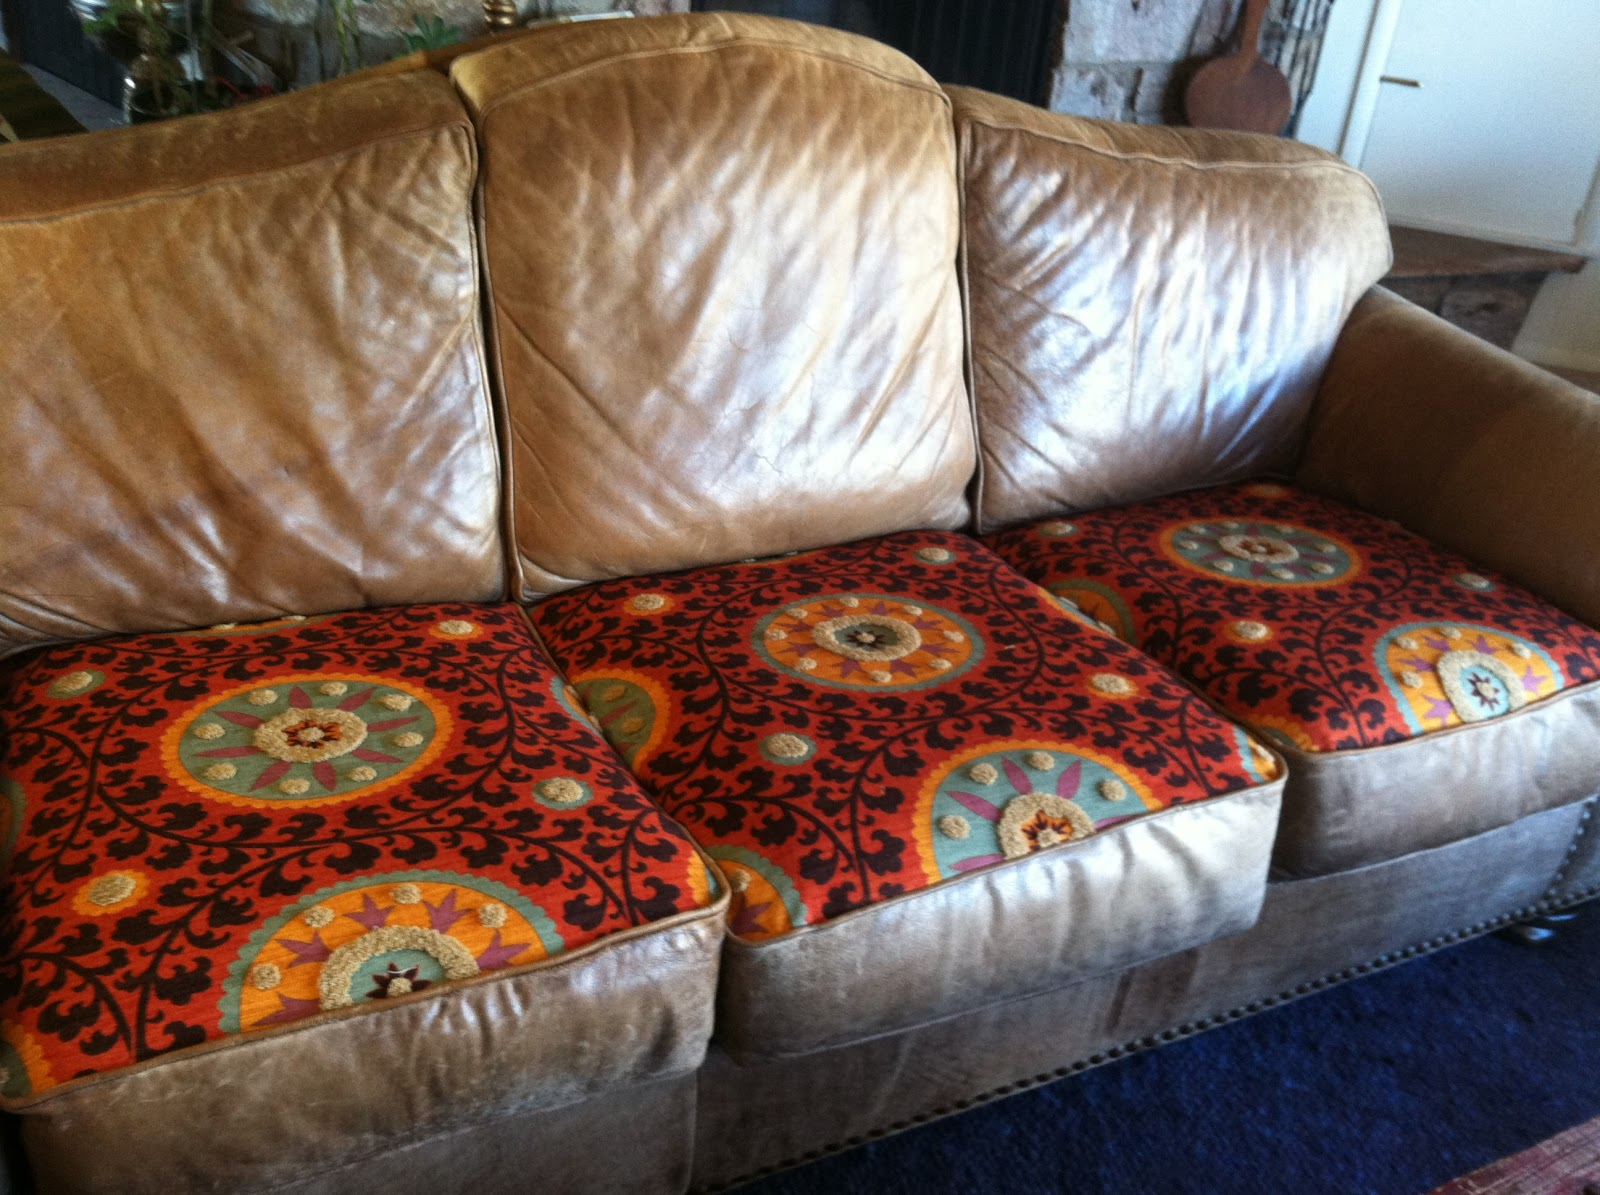 How To Repair Leather Sofa Springs Sell Reupholstering Cushions Mesmerizing Reupholster